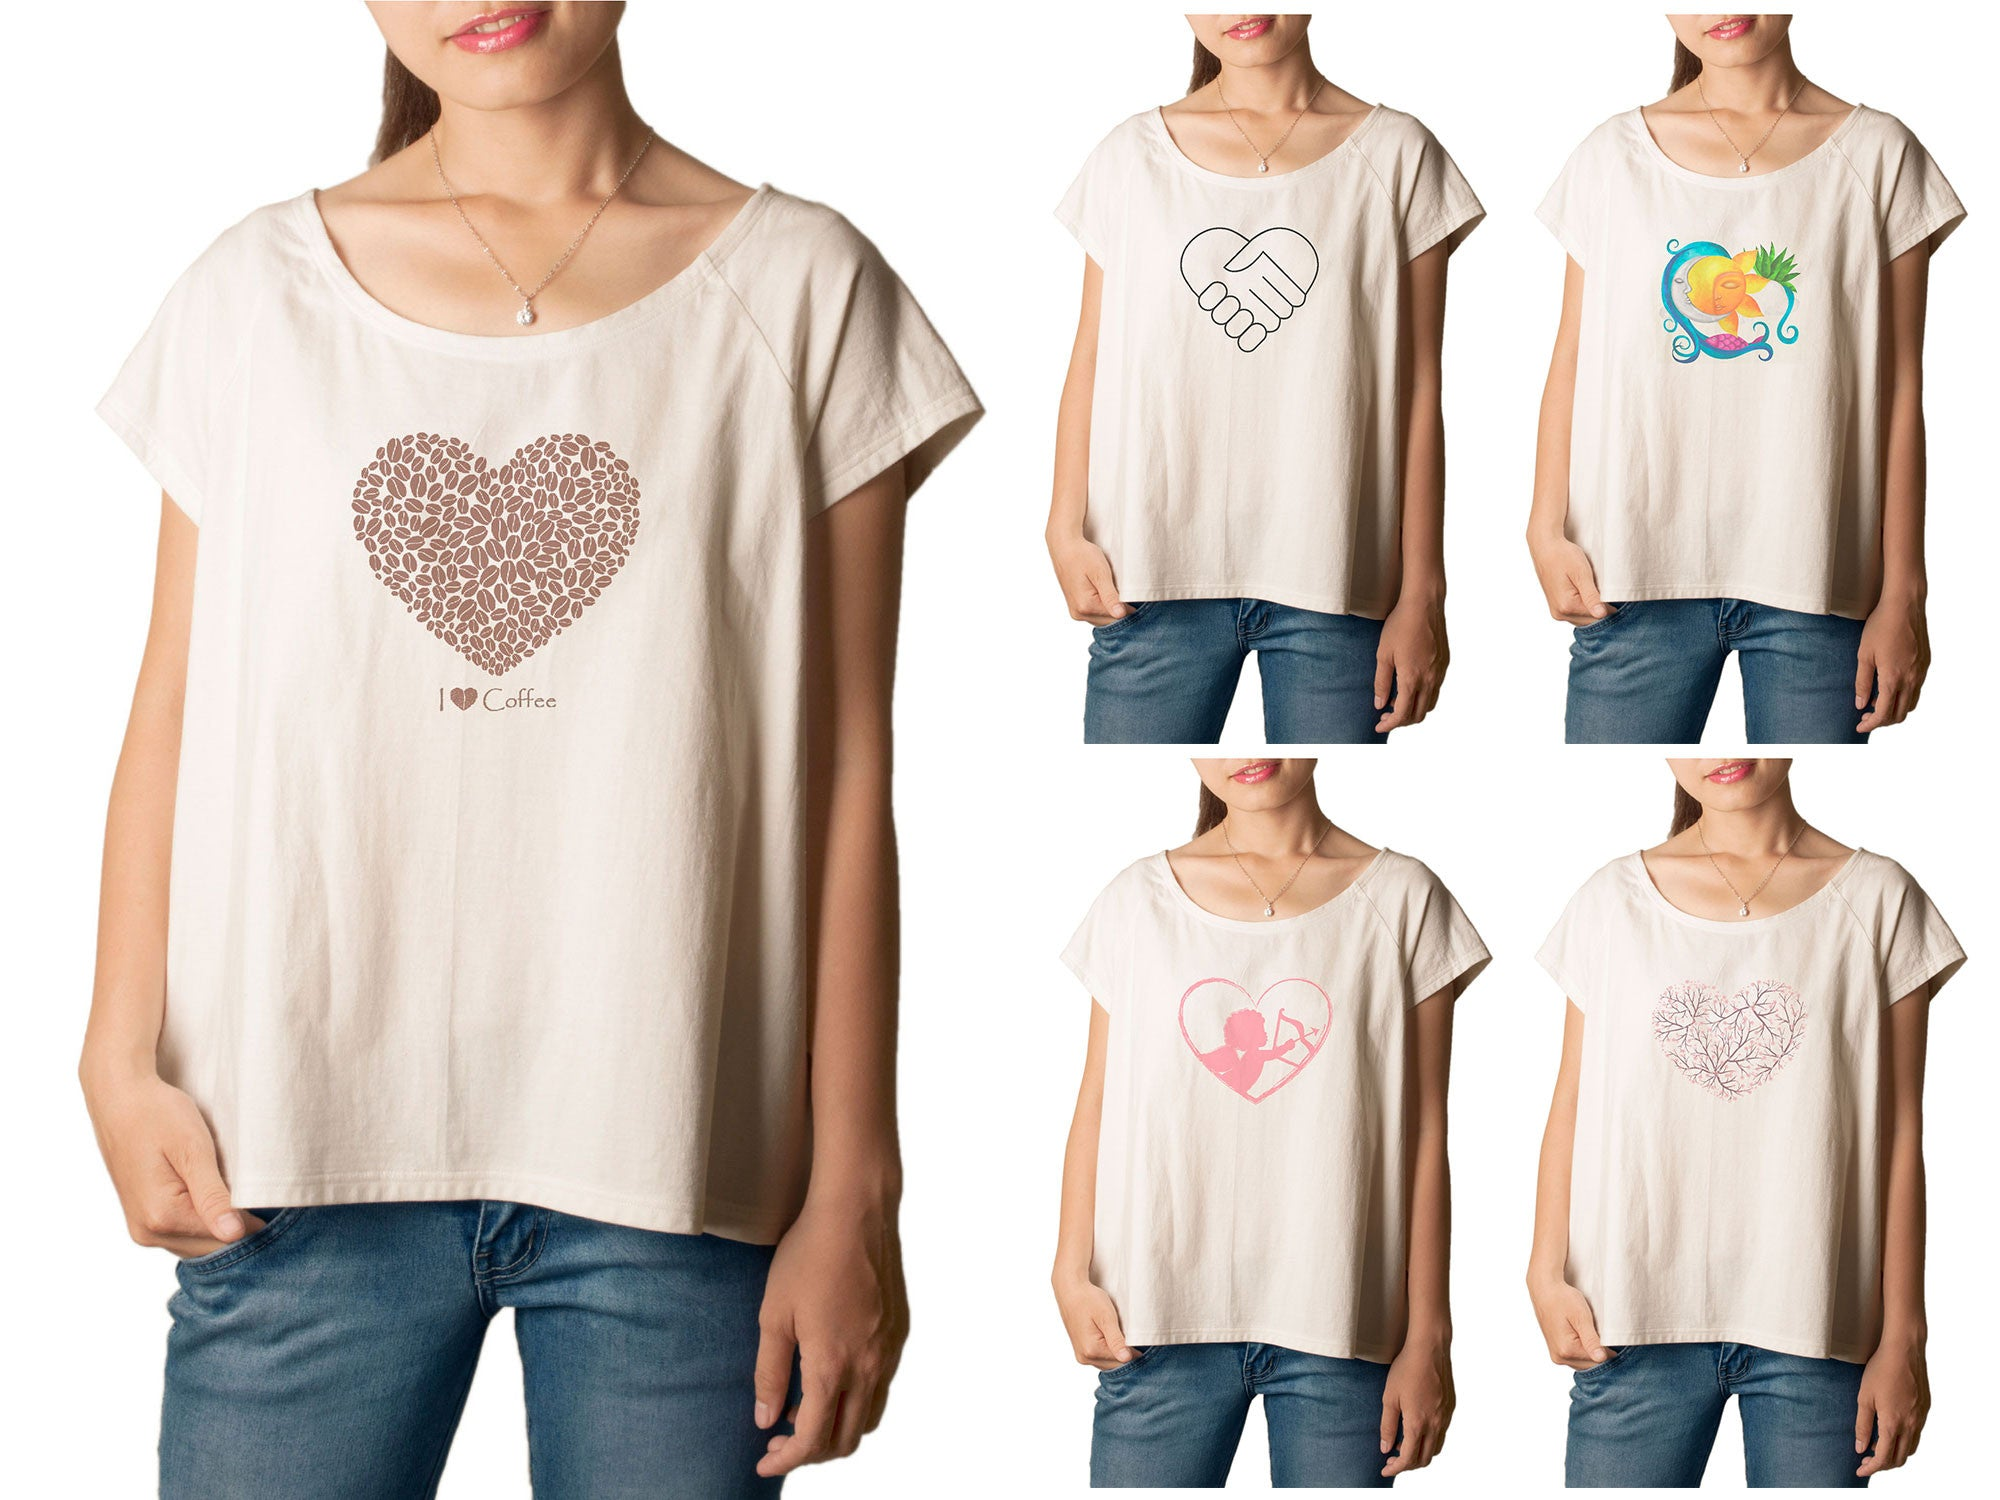 Women's Hearts 1 Printed cotton T-shirt  Tee WTS_01